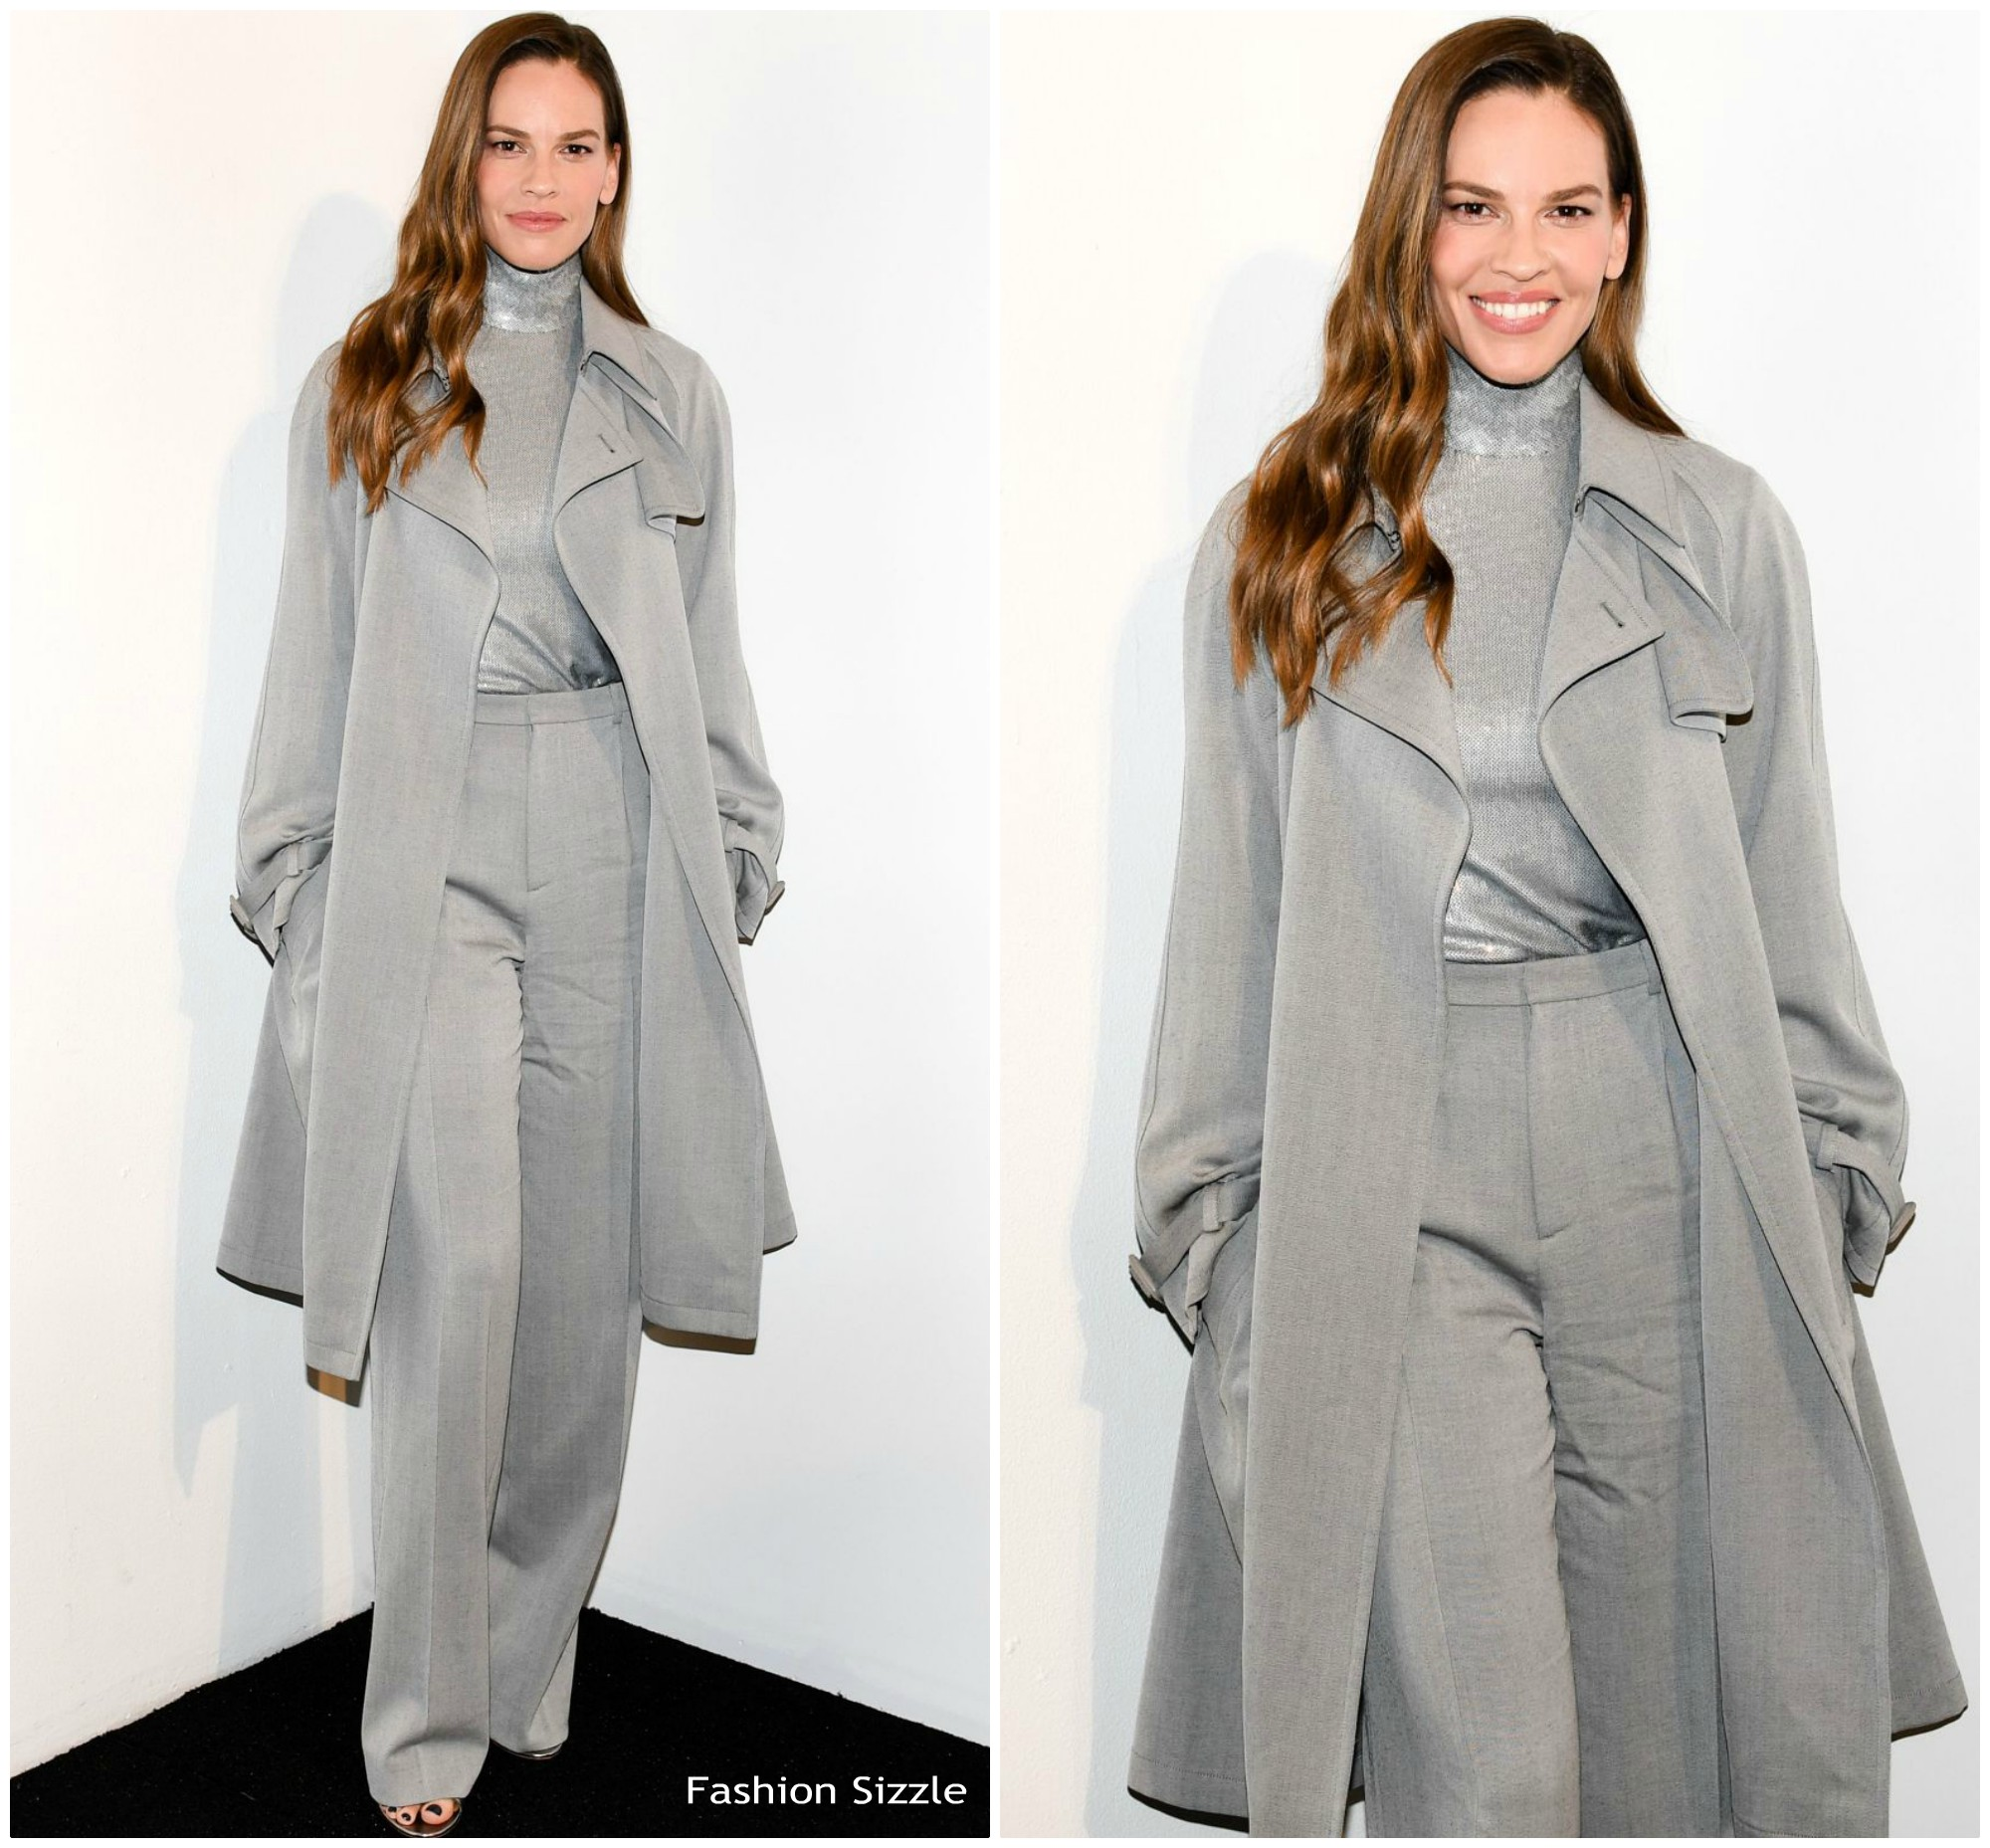 hilary-swank-in-ralph-lauren-ralph-lauren-fall-2018-nyfw-show